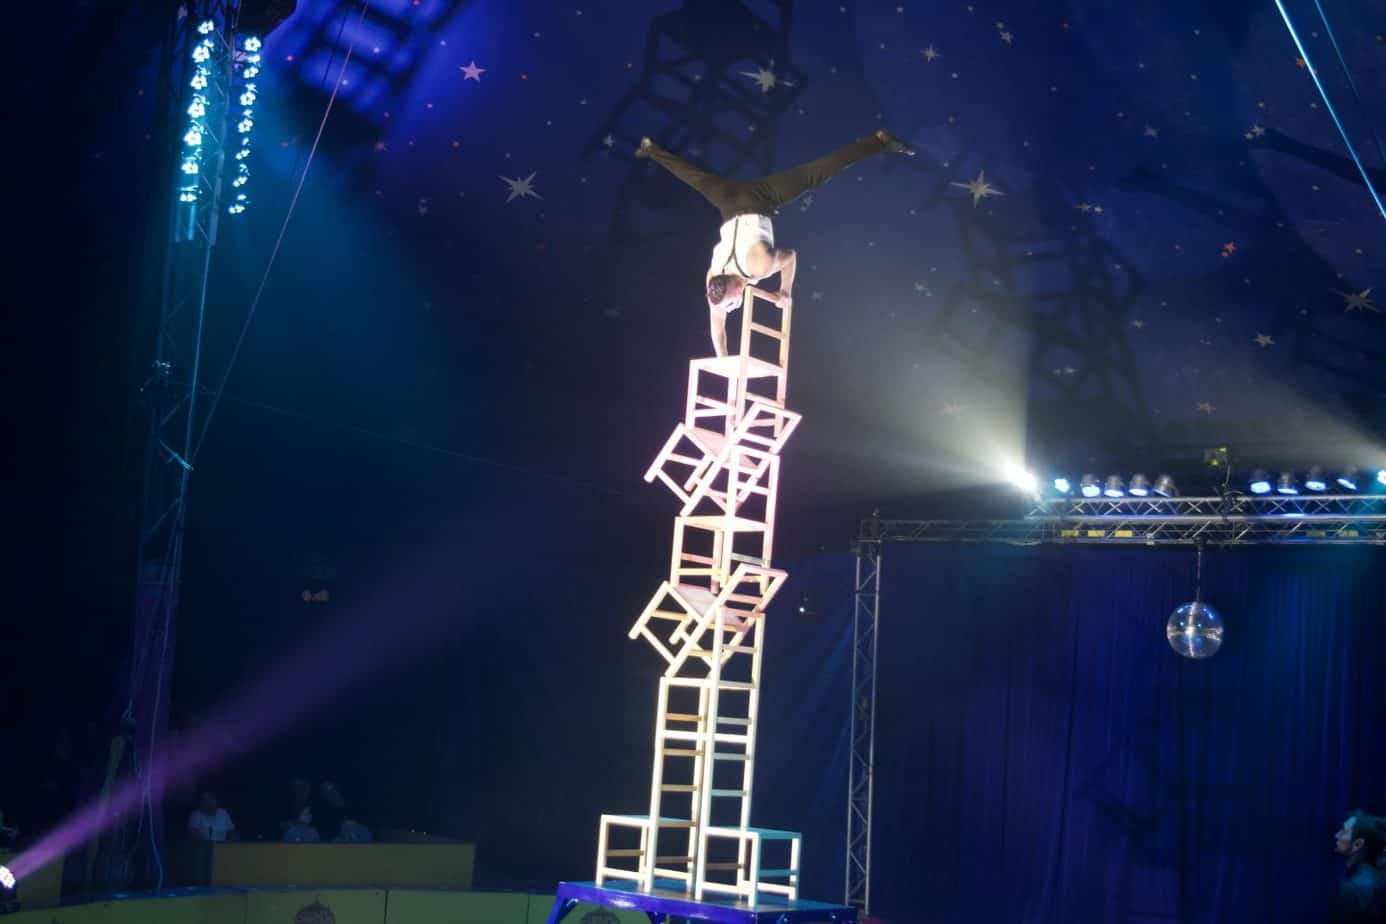 The balancing act on 8 chairs at The Paulos Circus